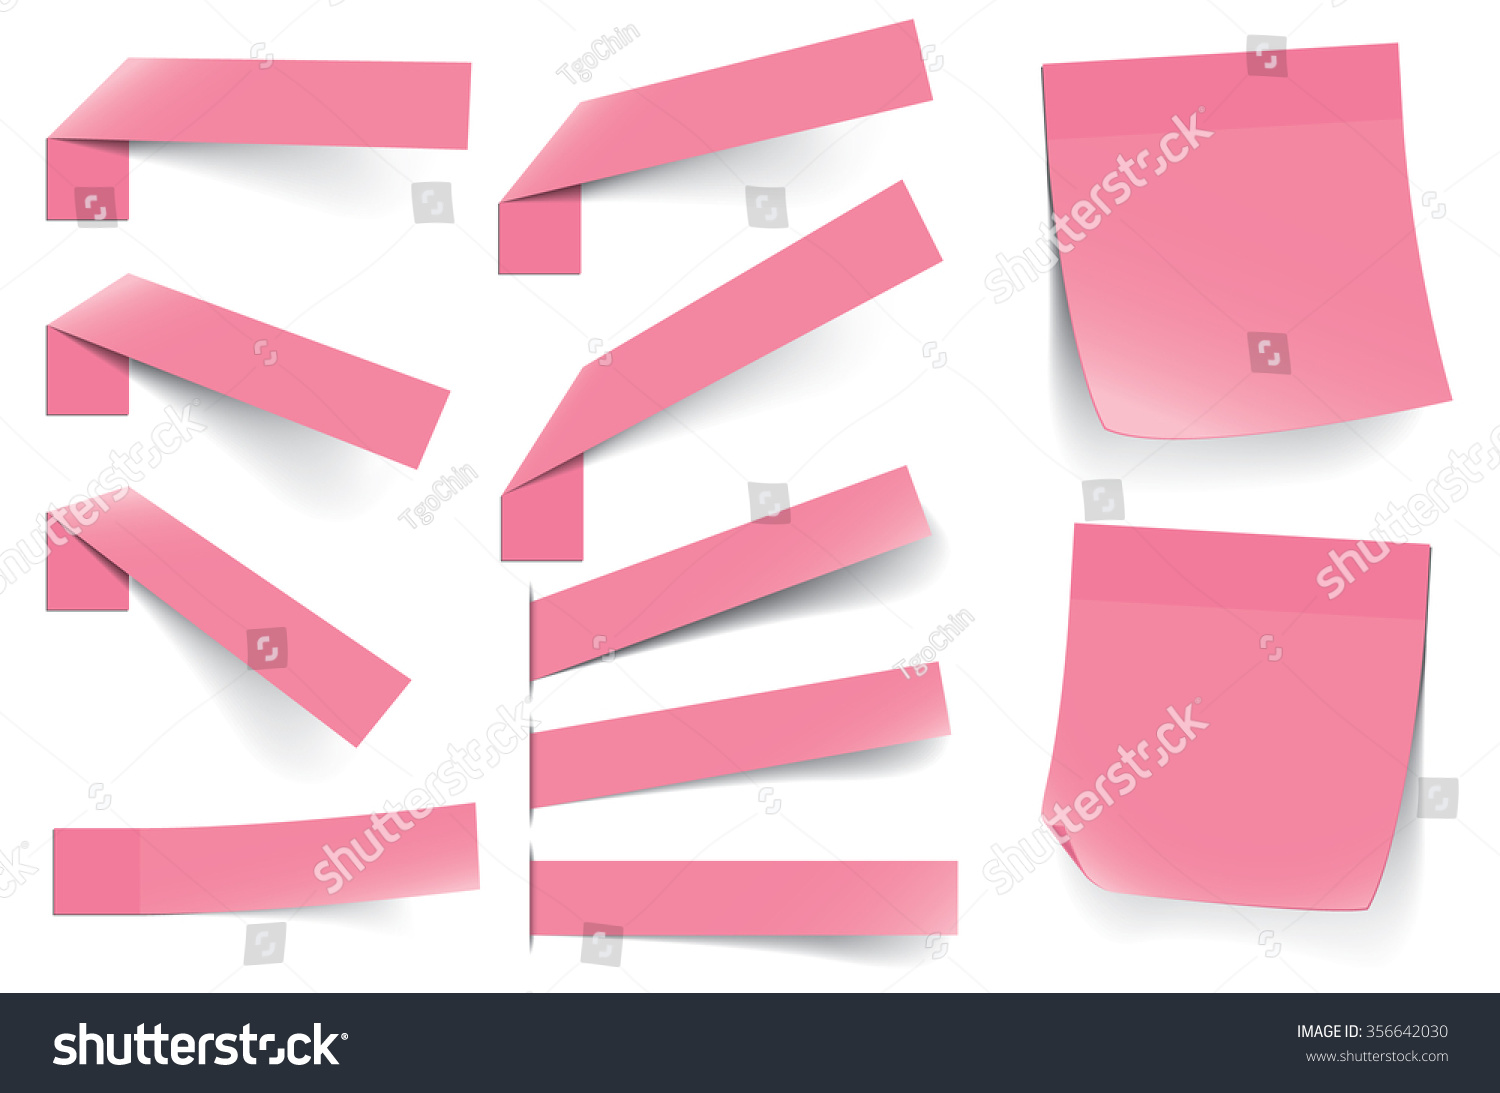 various sticky notes different sizes shapes stock vector royalty